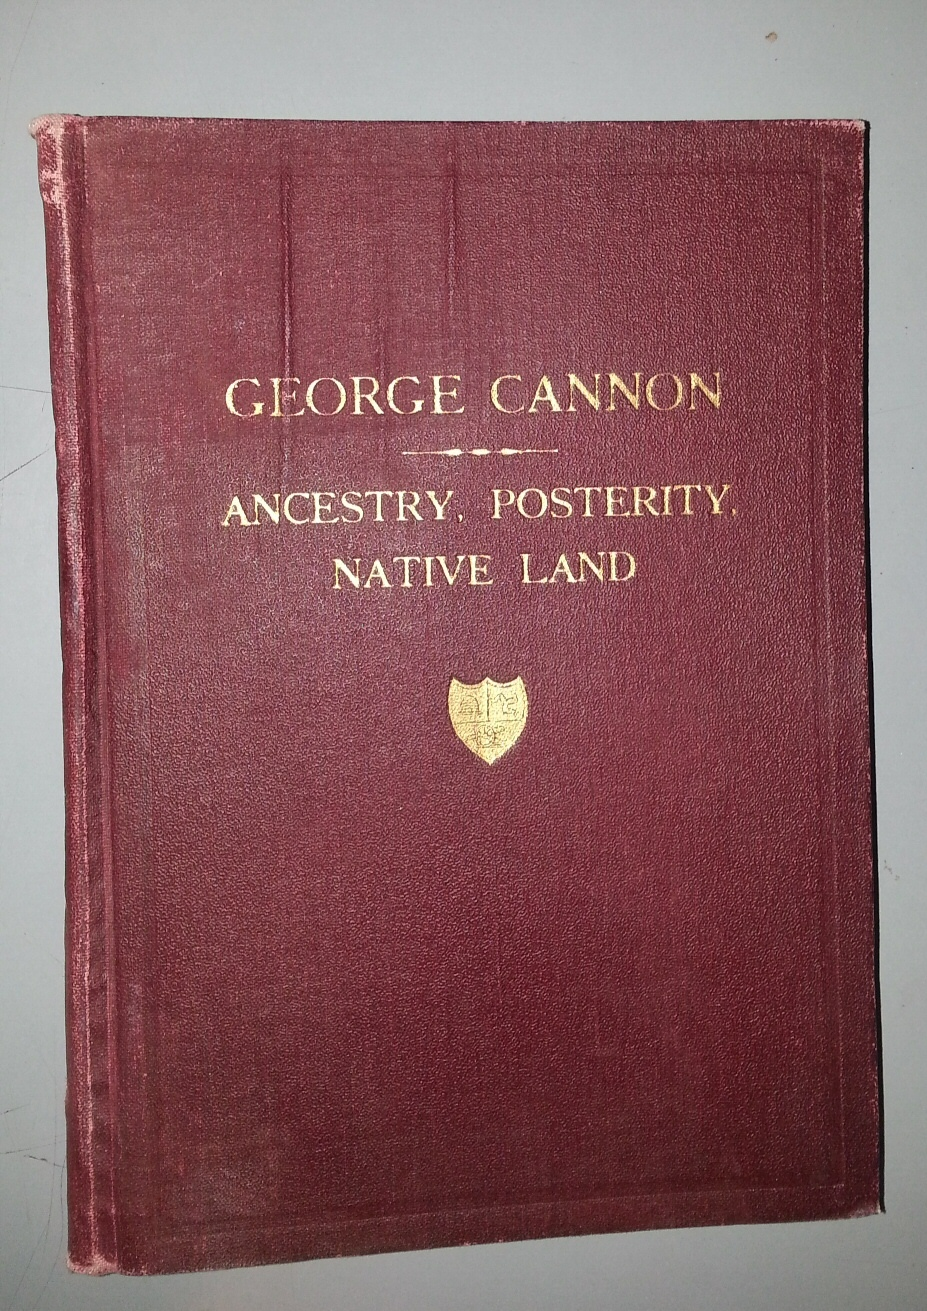 Image for George Cannon The Immigrant, Isle of Man, 1794 - St Louis, U.S.A., 1844 His Ancestry, His Life, His Native Land, His Posterity